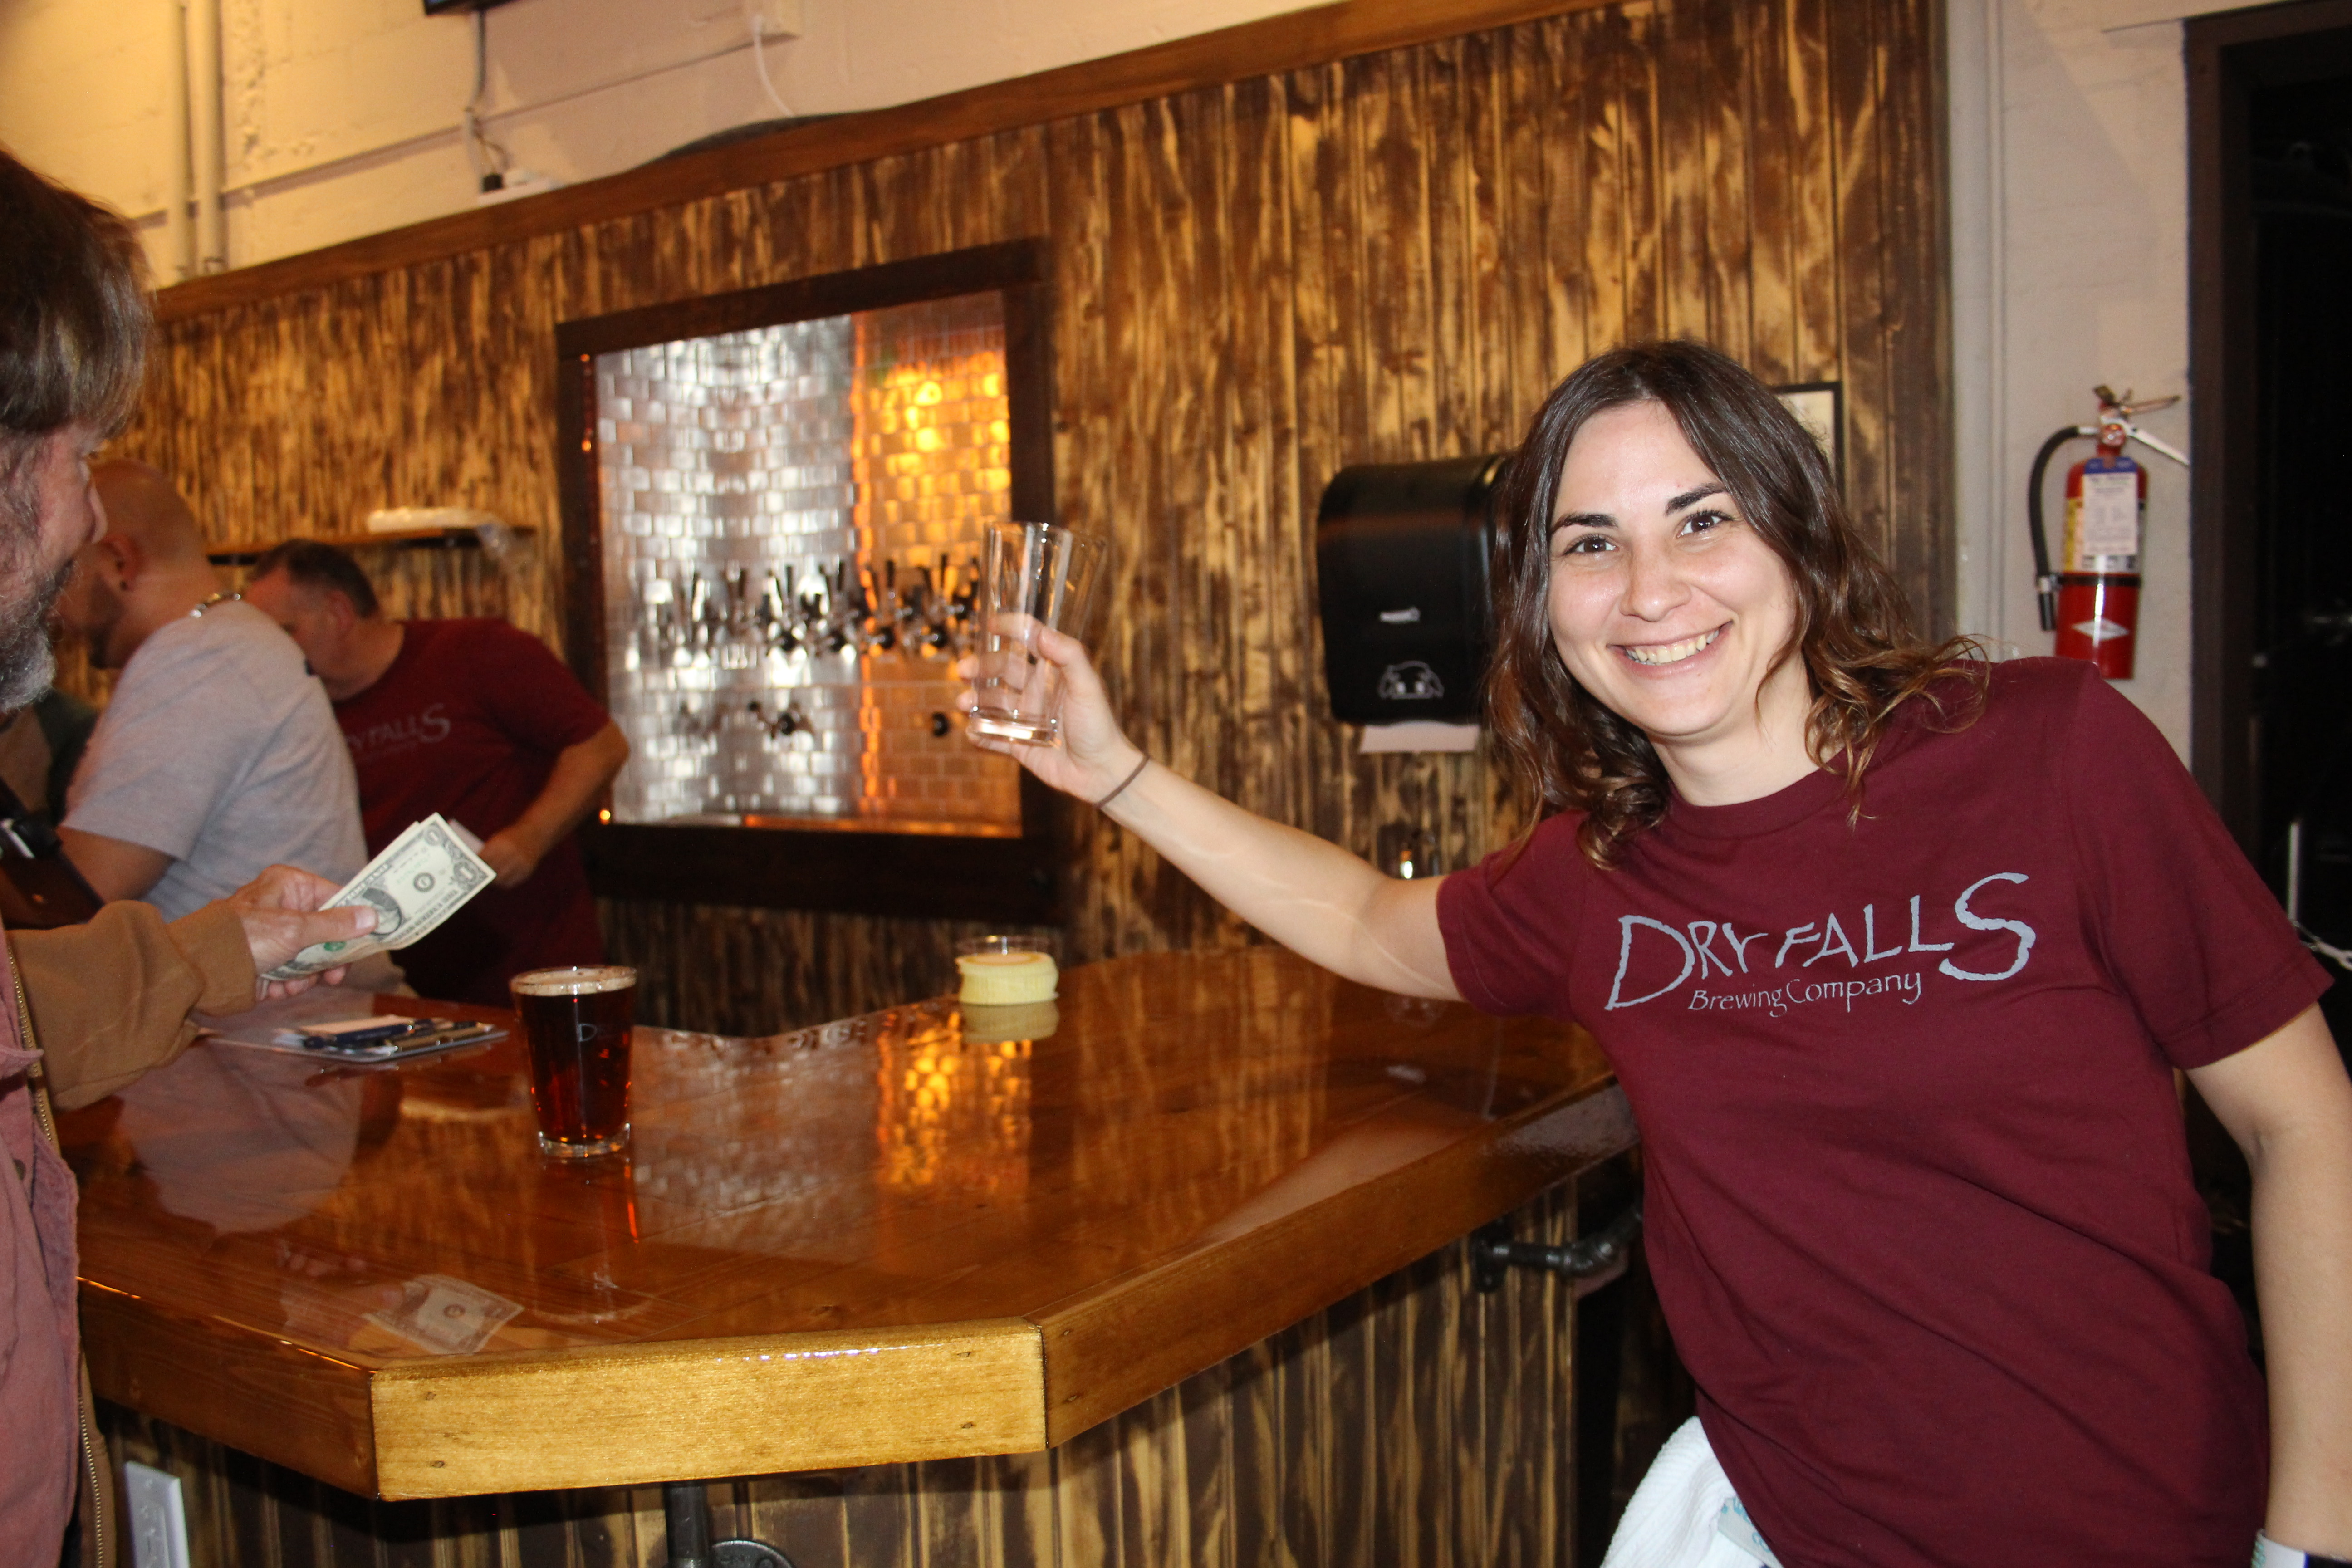 A server celebrates on opening day at Dry Falls Brewing Co.